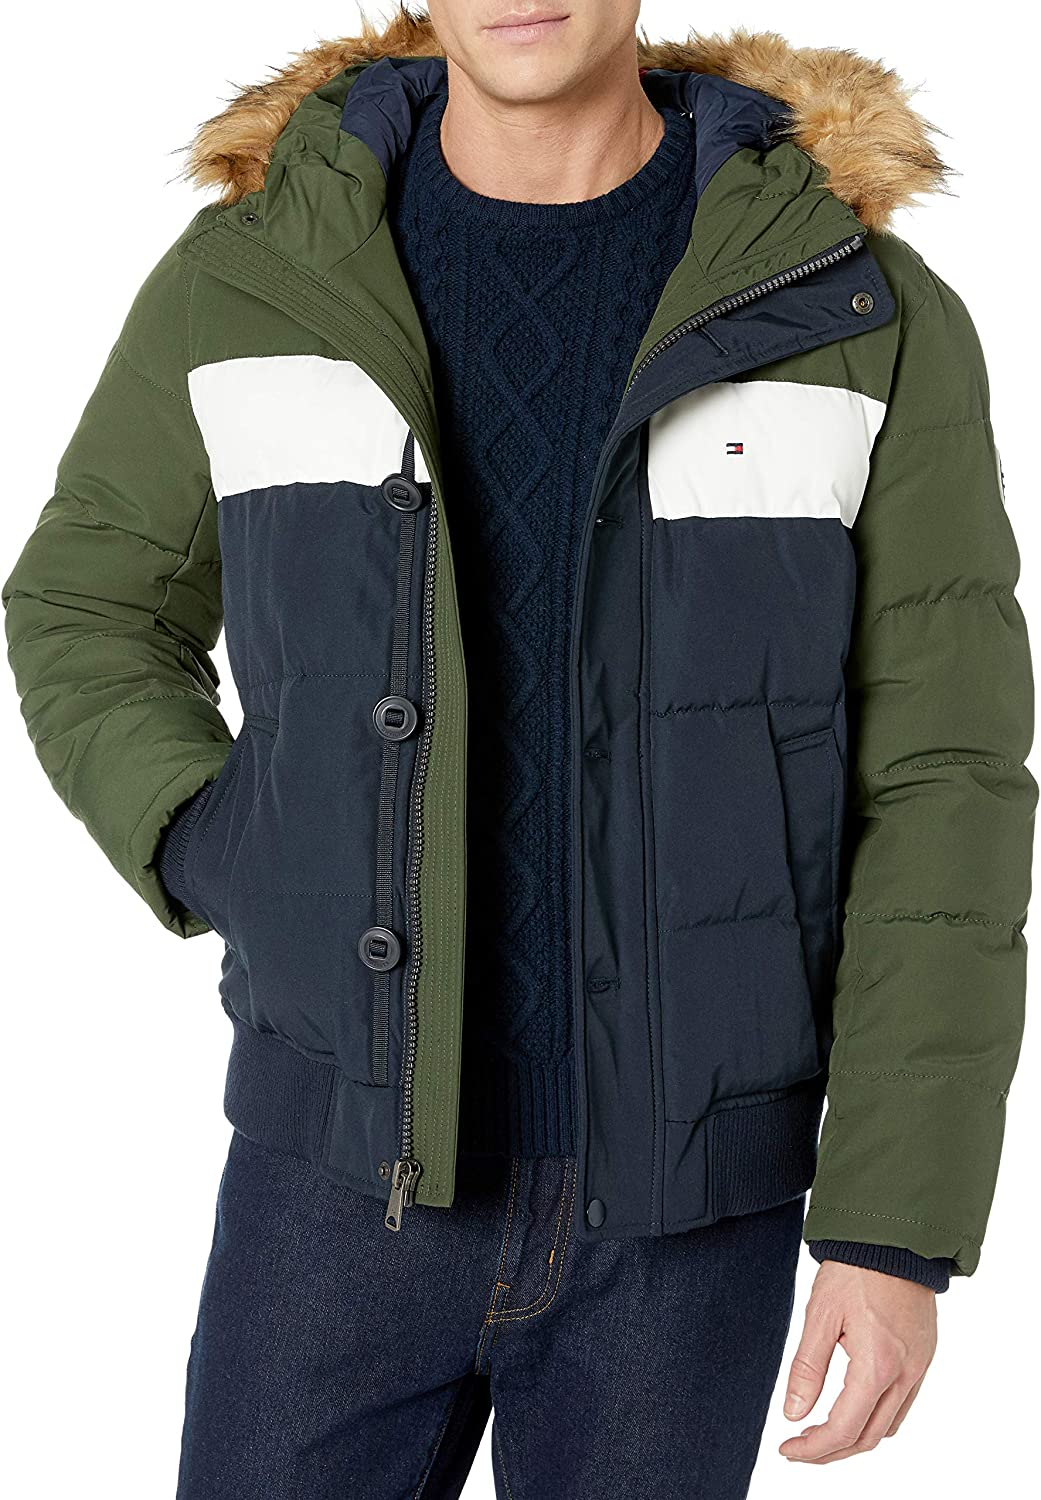 Tommy Hilfiger Men's Arctic Cloth Full Length Quilted Snorkel Jacket (Standard and Big & Tall)